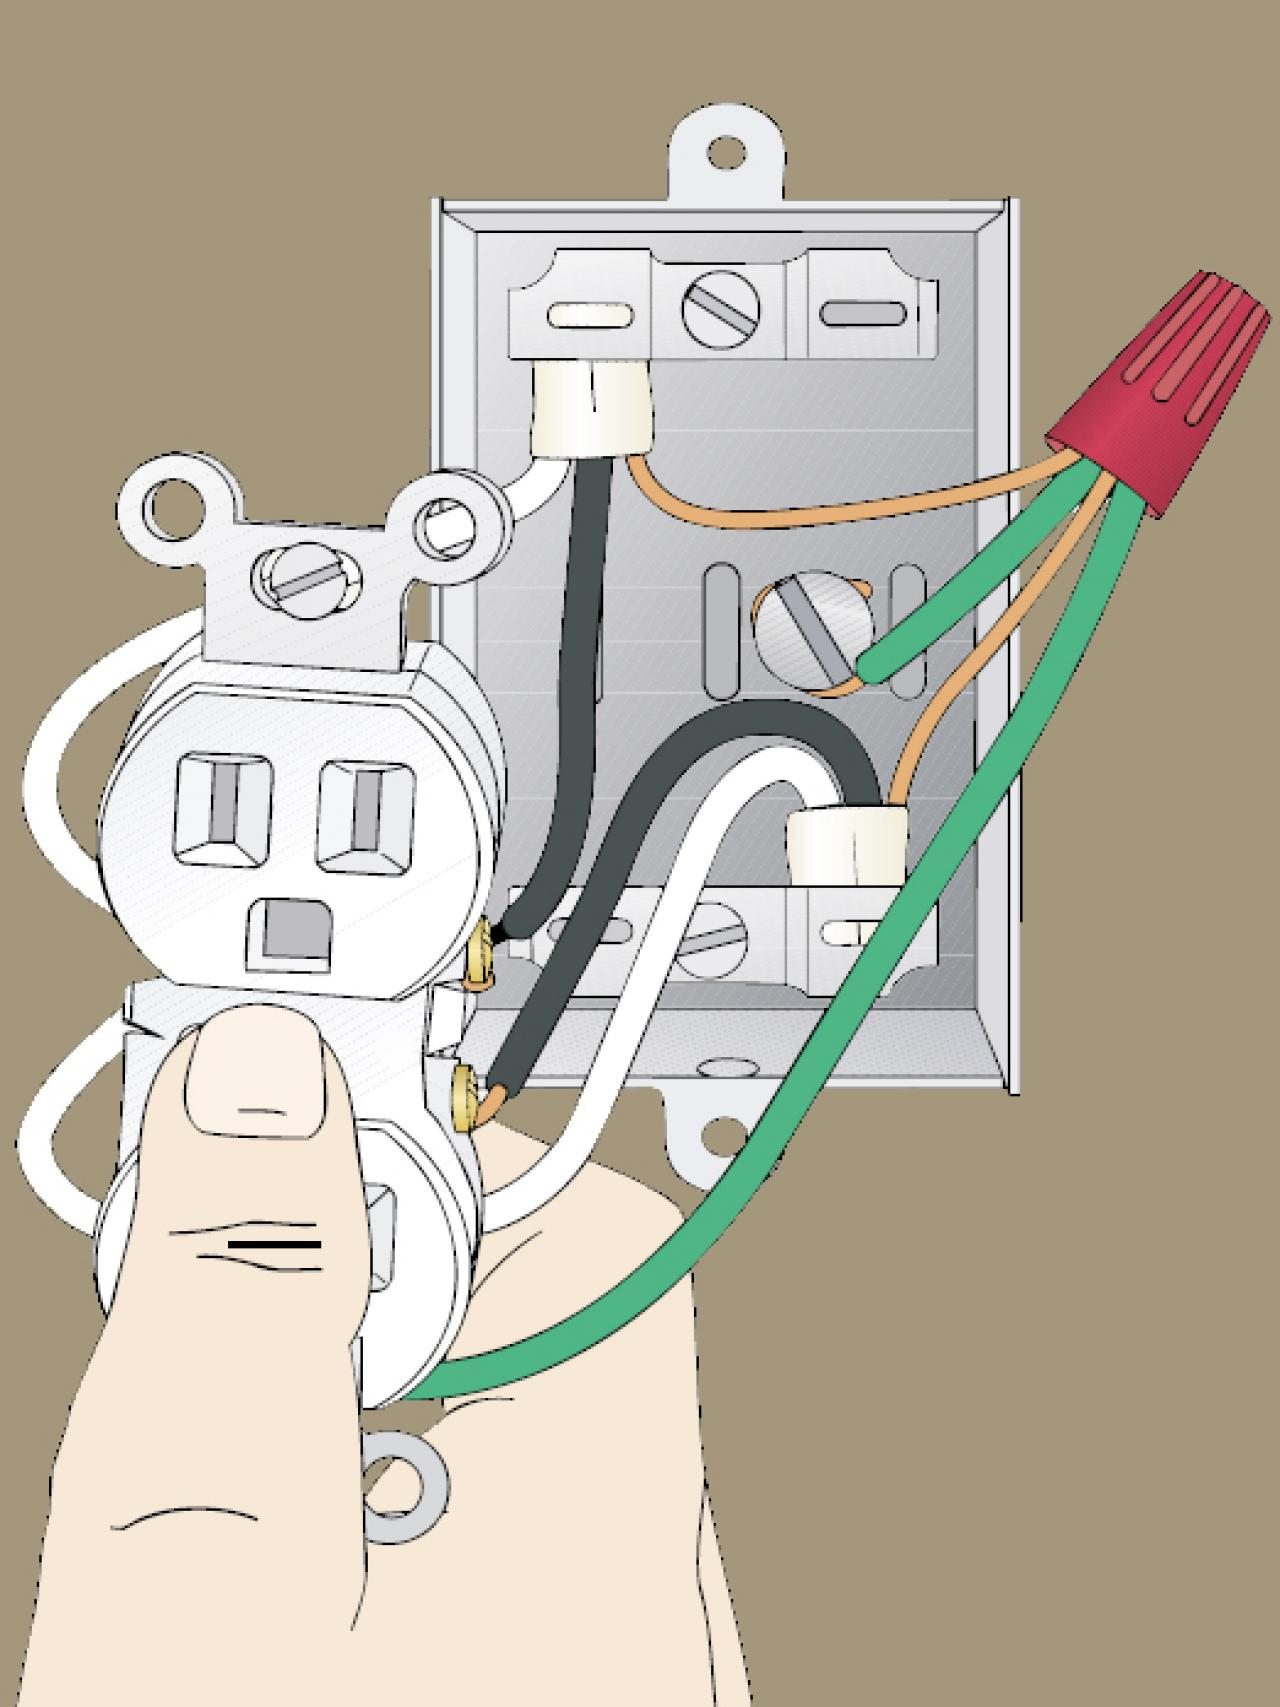 How To Identify Wiring Diy House Switched Outlet Middle Of Run